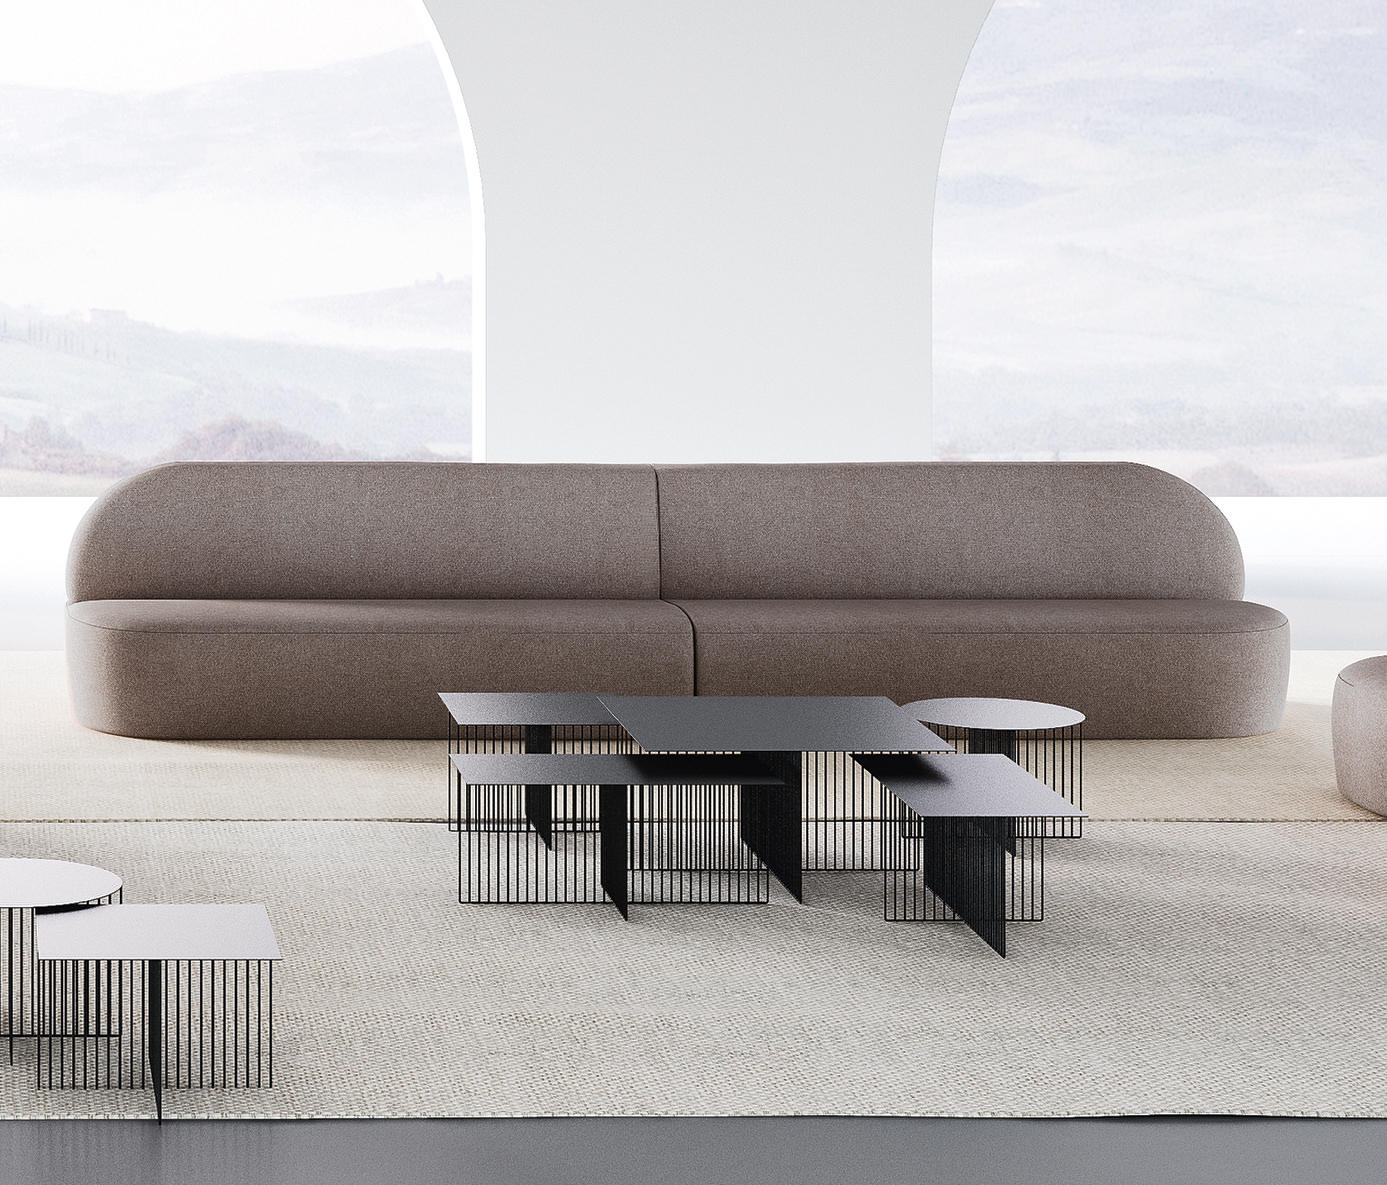 GUEST - Sofas from La Cividina | Architonic